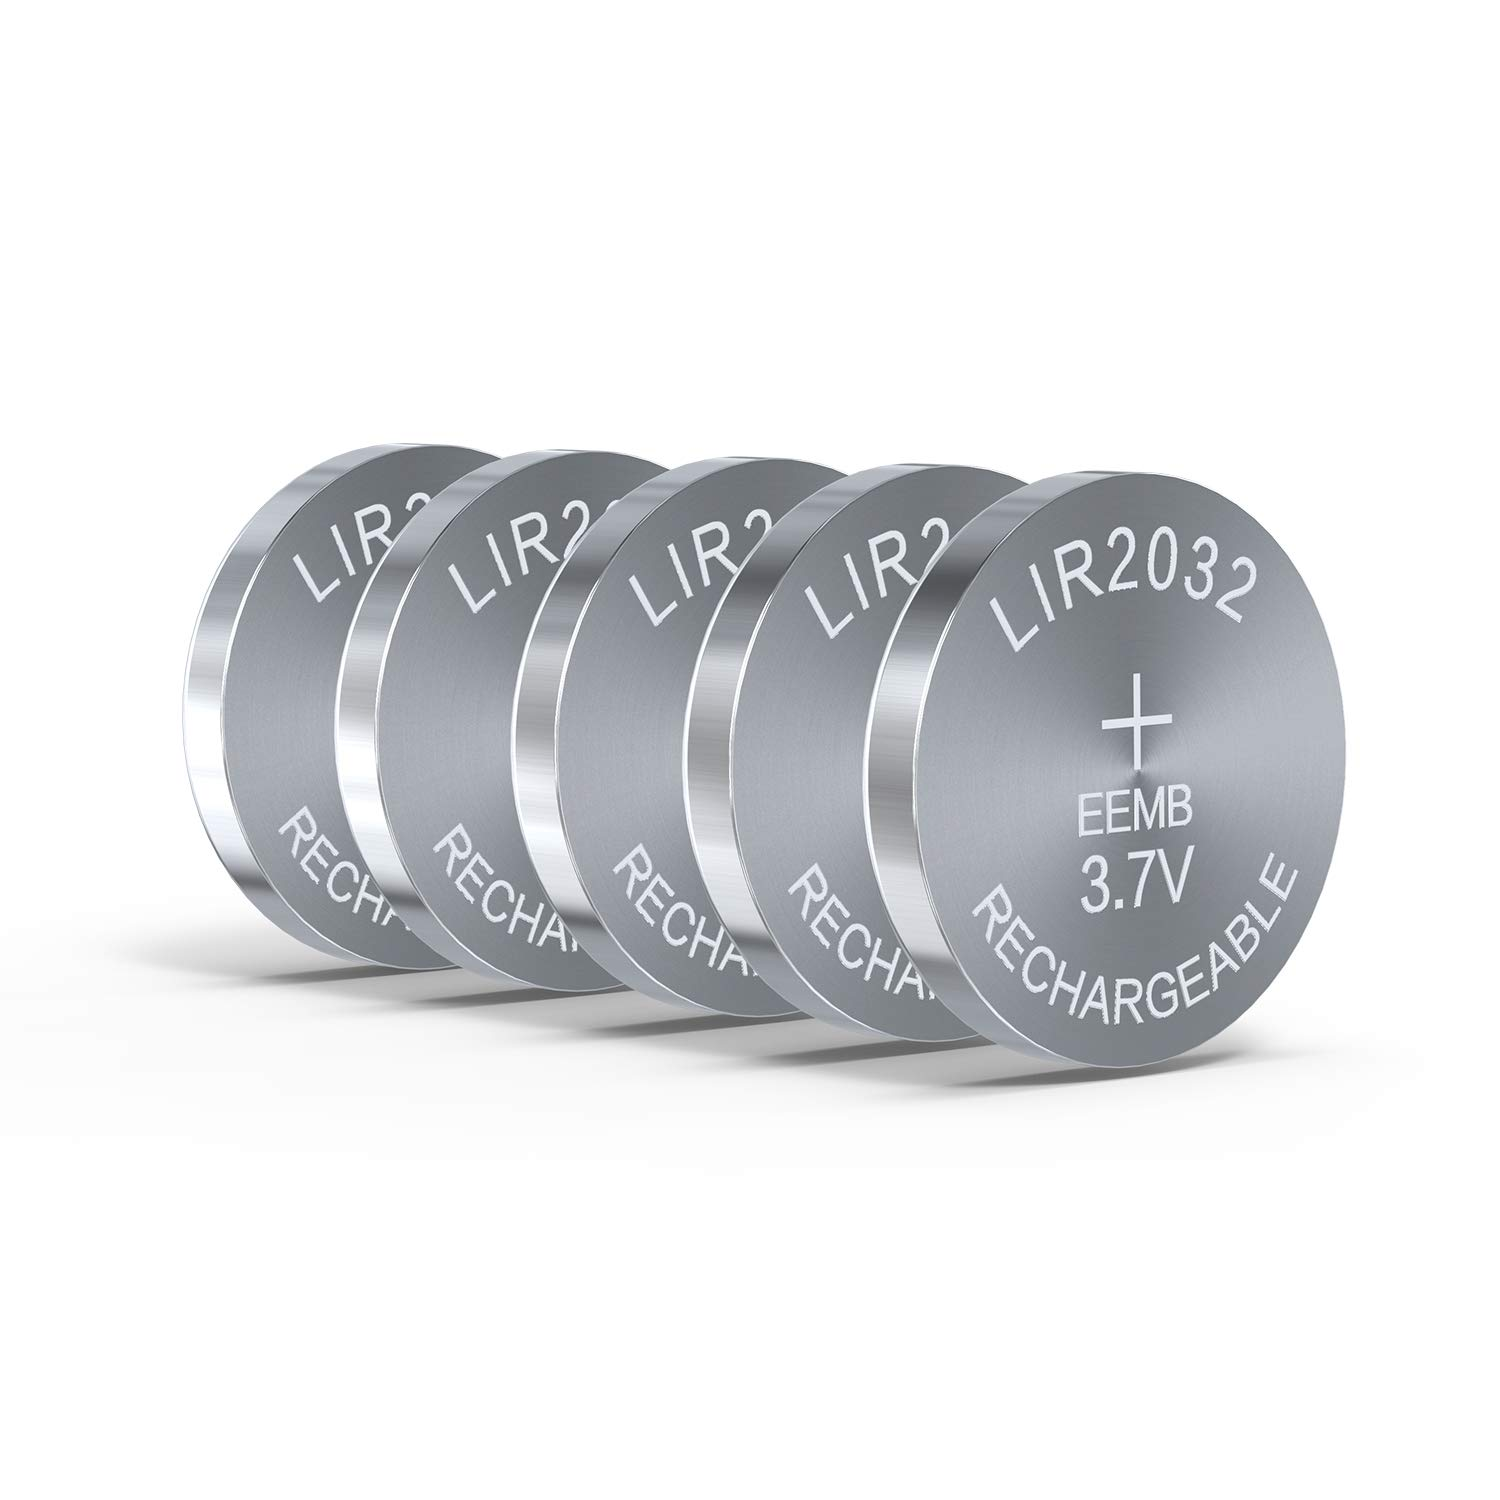 3.7V 45mAh LIR2032 Rechargeable Cell Li-ion Button Battery UL Certified for Bluetooth Earphone Light Game Controllers (5PCS)